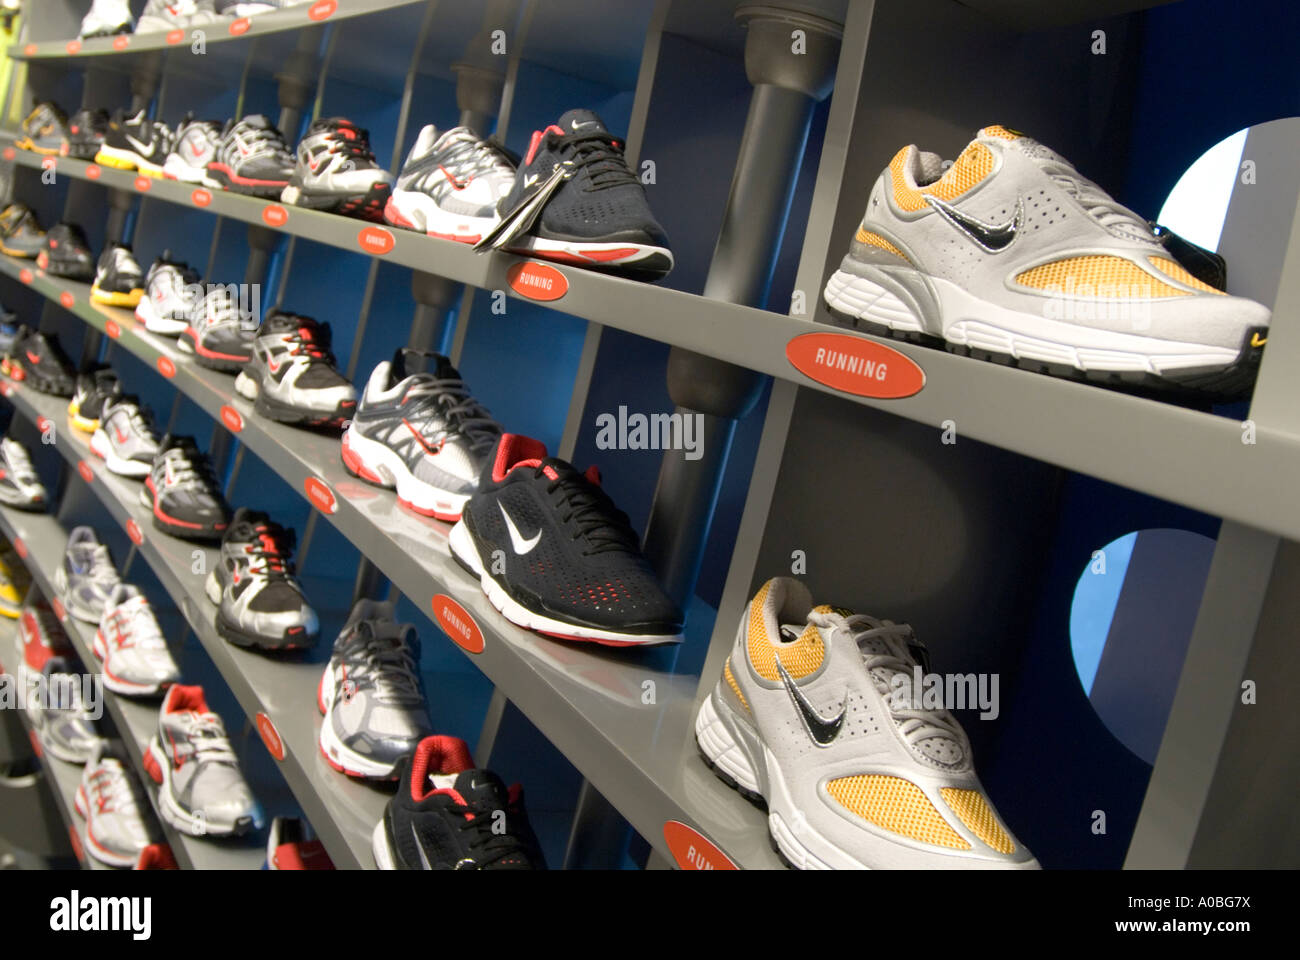 Arturo Beca Forma del barco  Rows of Nike trainers in Niketown London England UK Stock Photo - Alamy